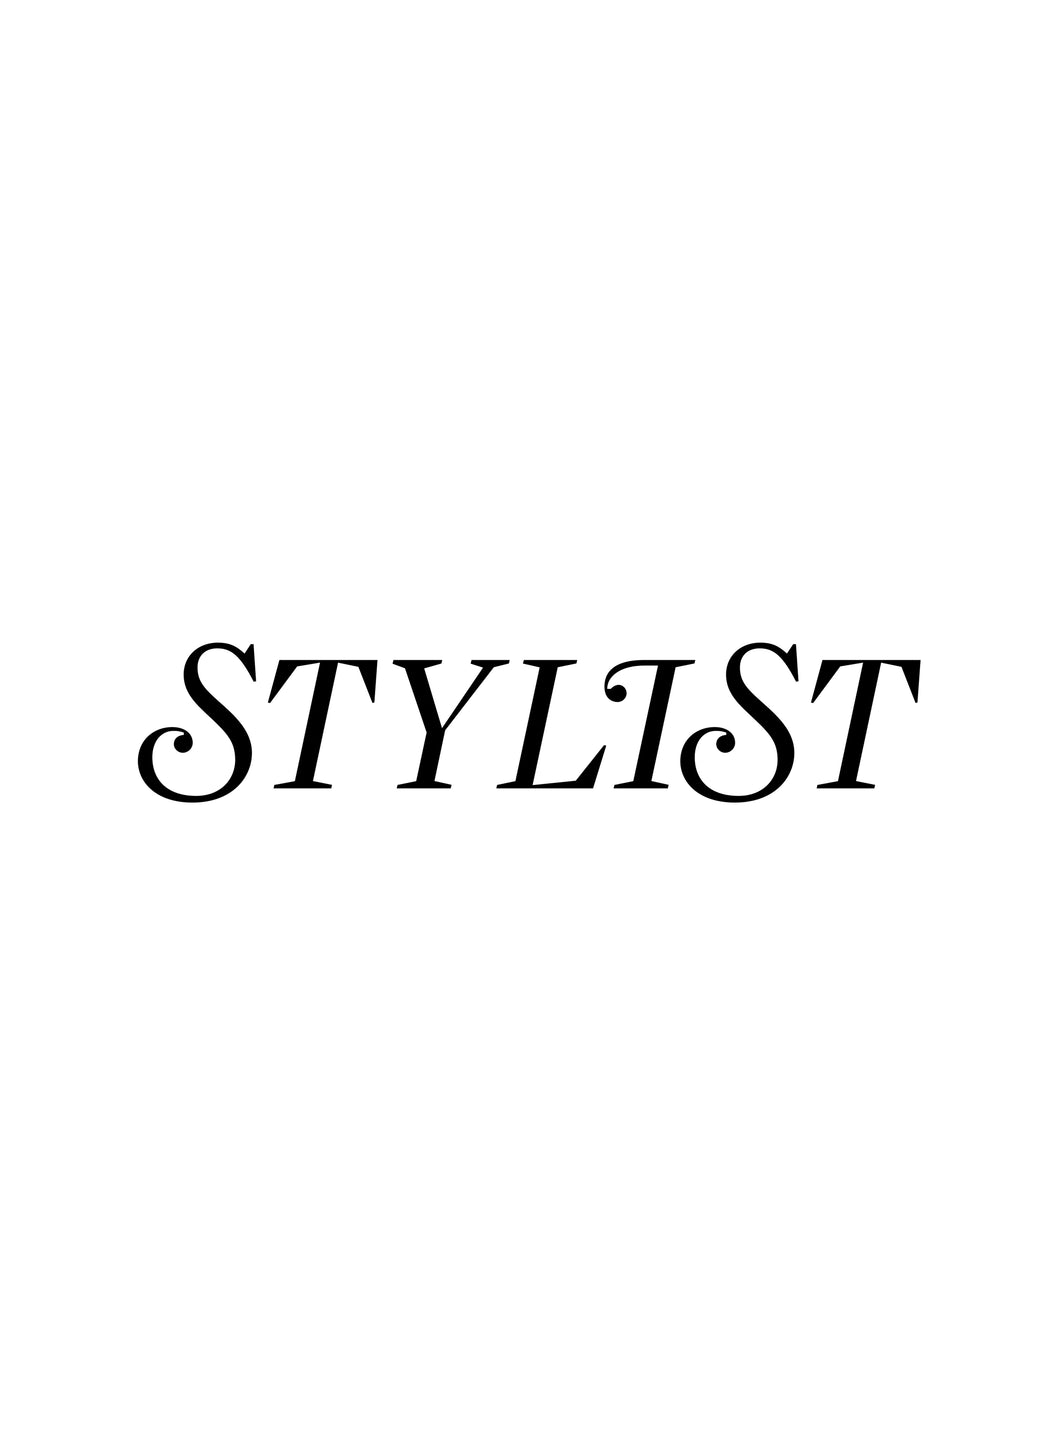 Stylist - January 30th